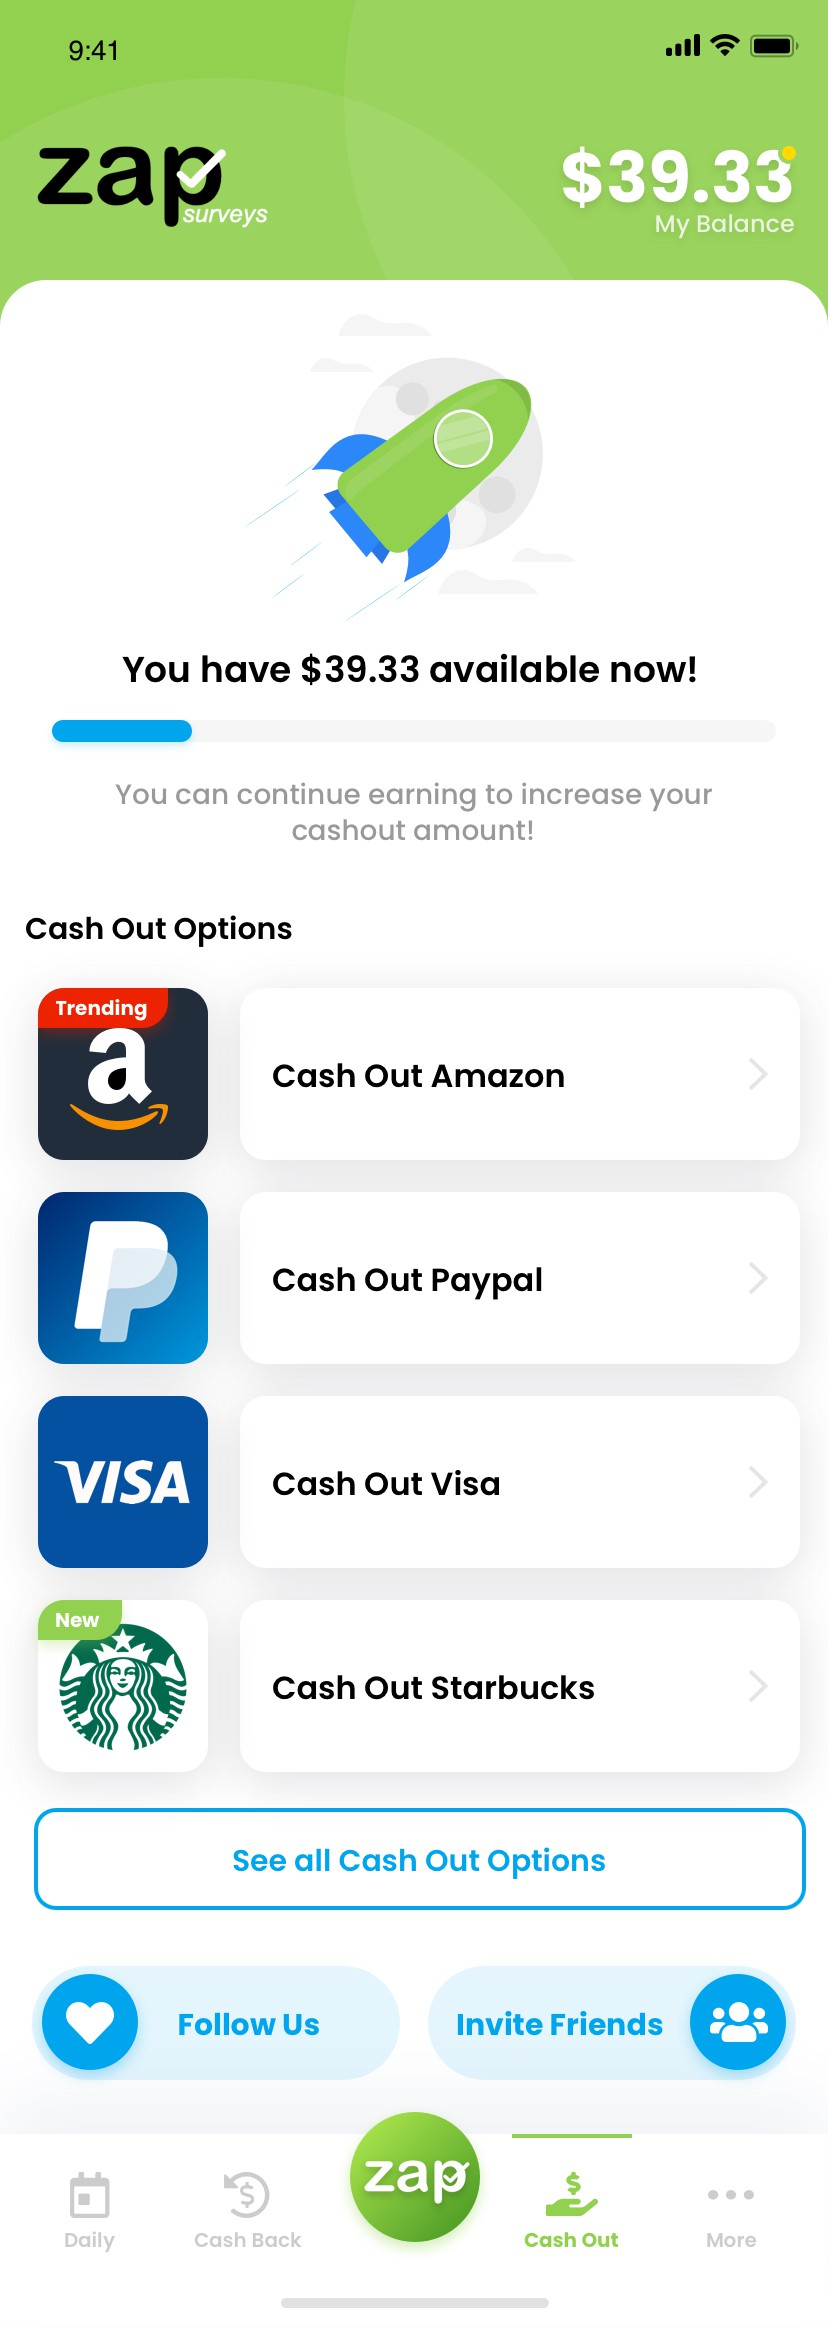 Mobile App Screen - Cash Out Screen